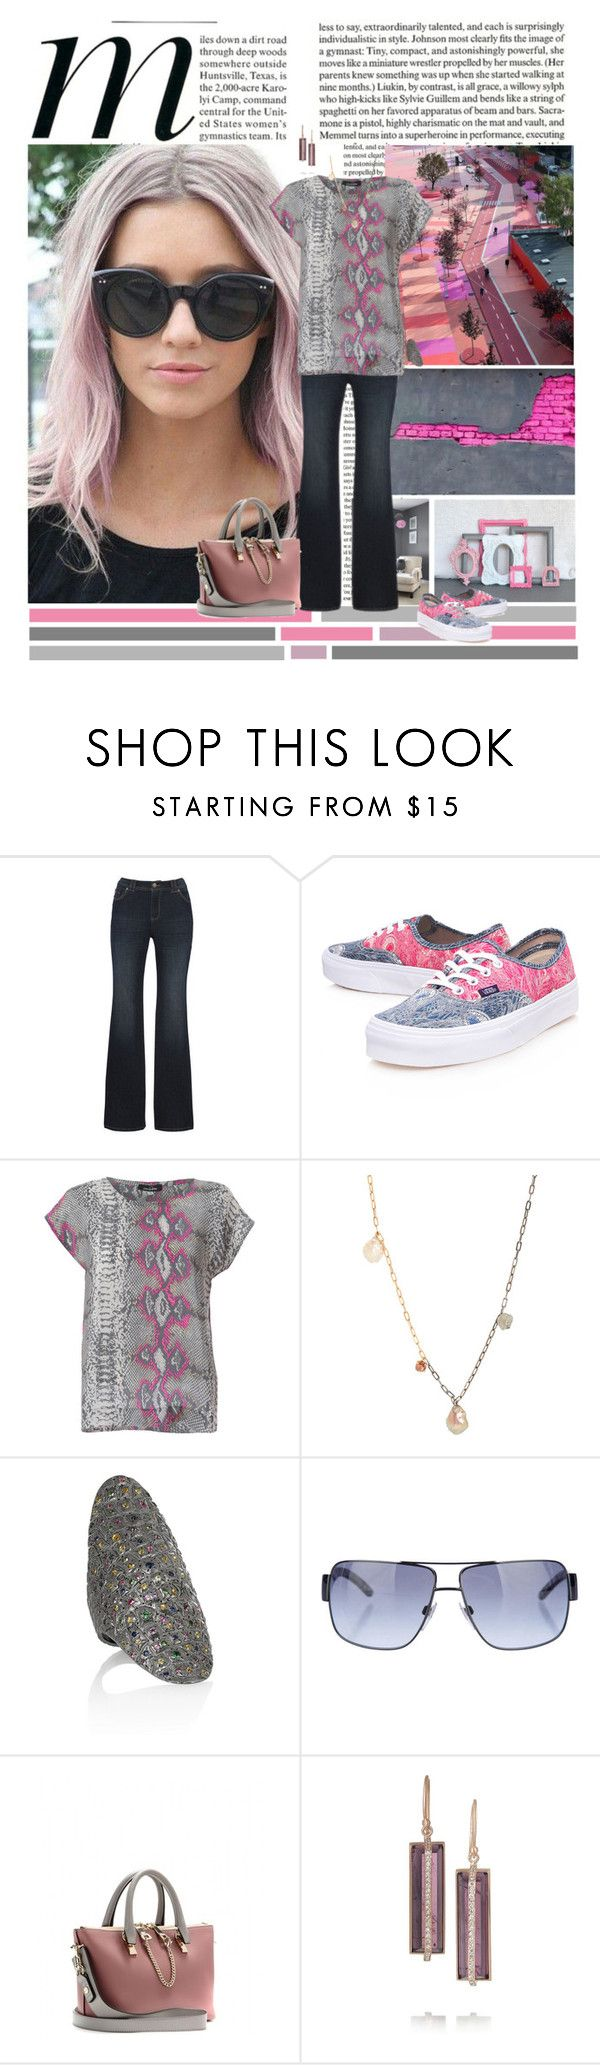 """Grey & Pink"" by valc5 ❤ liked on Polyvore featuring Yohji Yamamoto, Vans, Mercy Delta, Sharon Khazzam, Venyx, Burberry, Chloé and BROOKE GREGSON"